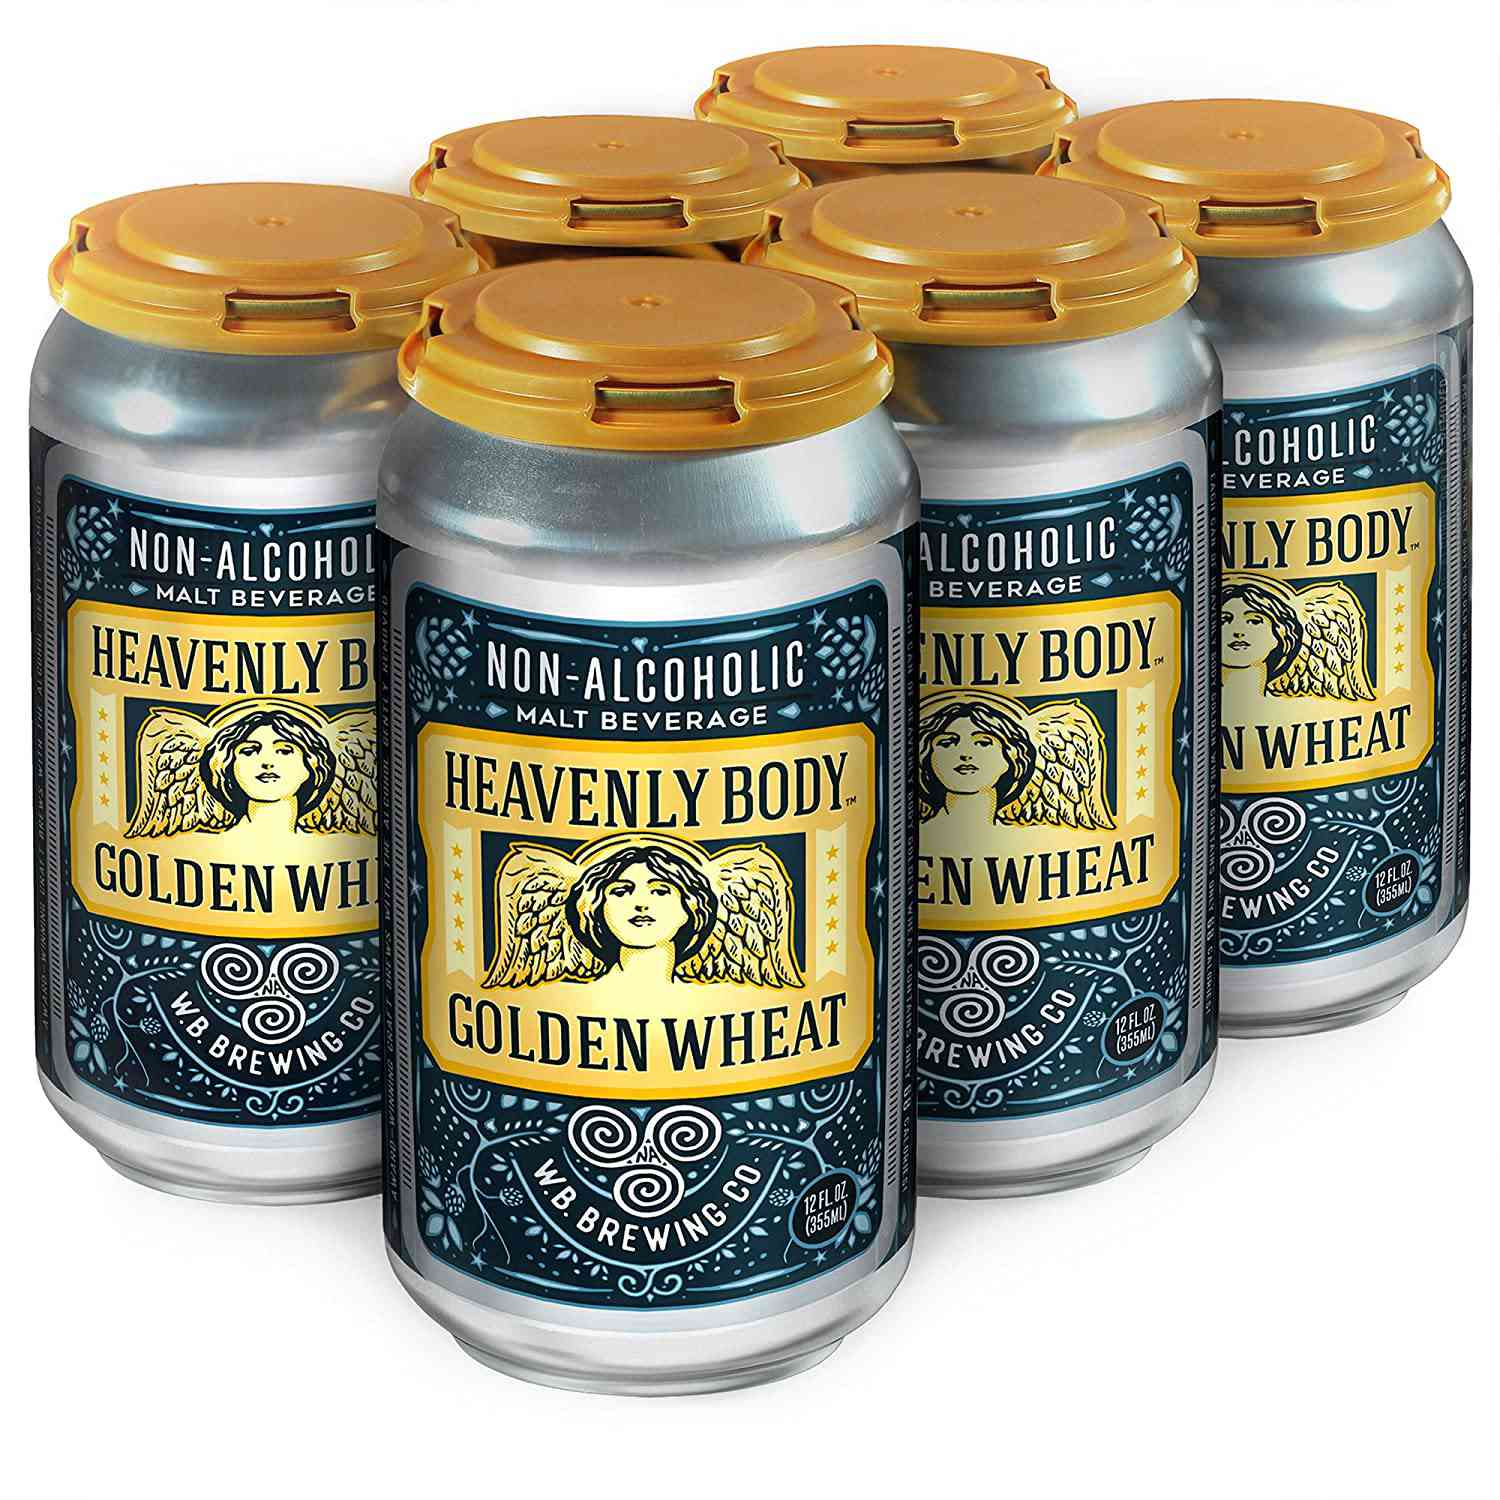 WellBeing Brewing Company Heavenly Body Golden Wheat